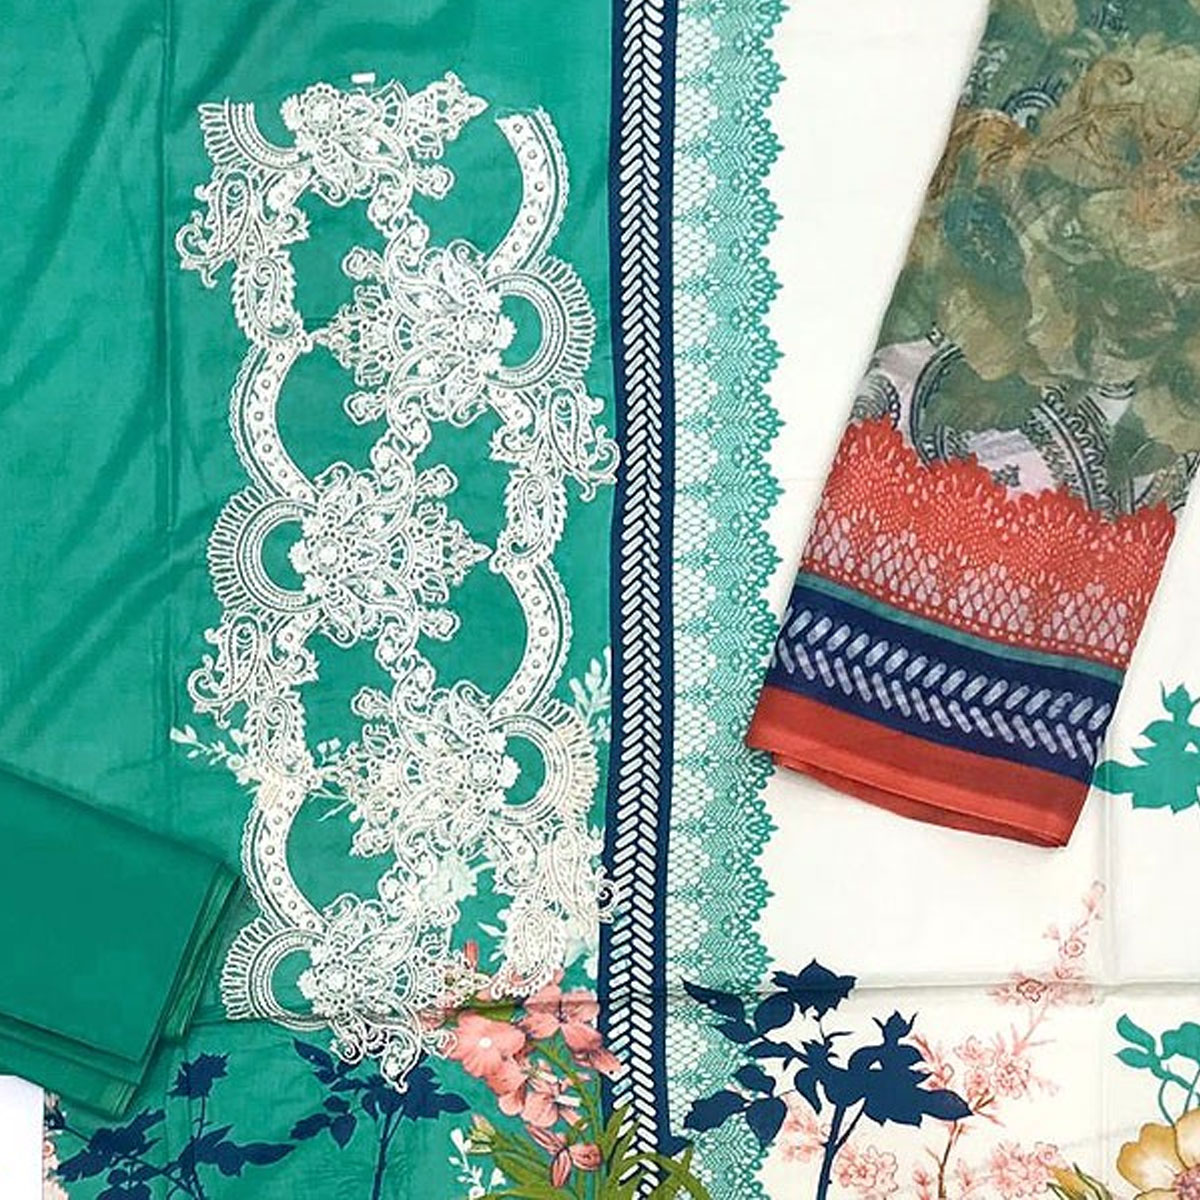 Pakistani Embroidered Lawn Suit 2020 with Chiffon Dupatta (DRL-415) (Unstitched) Gallery Image 2